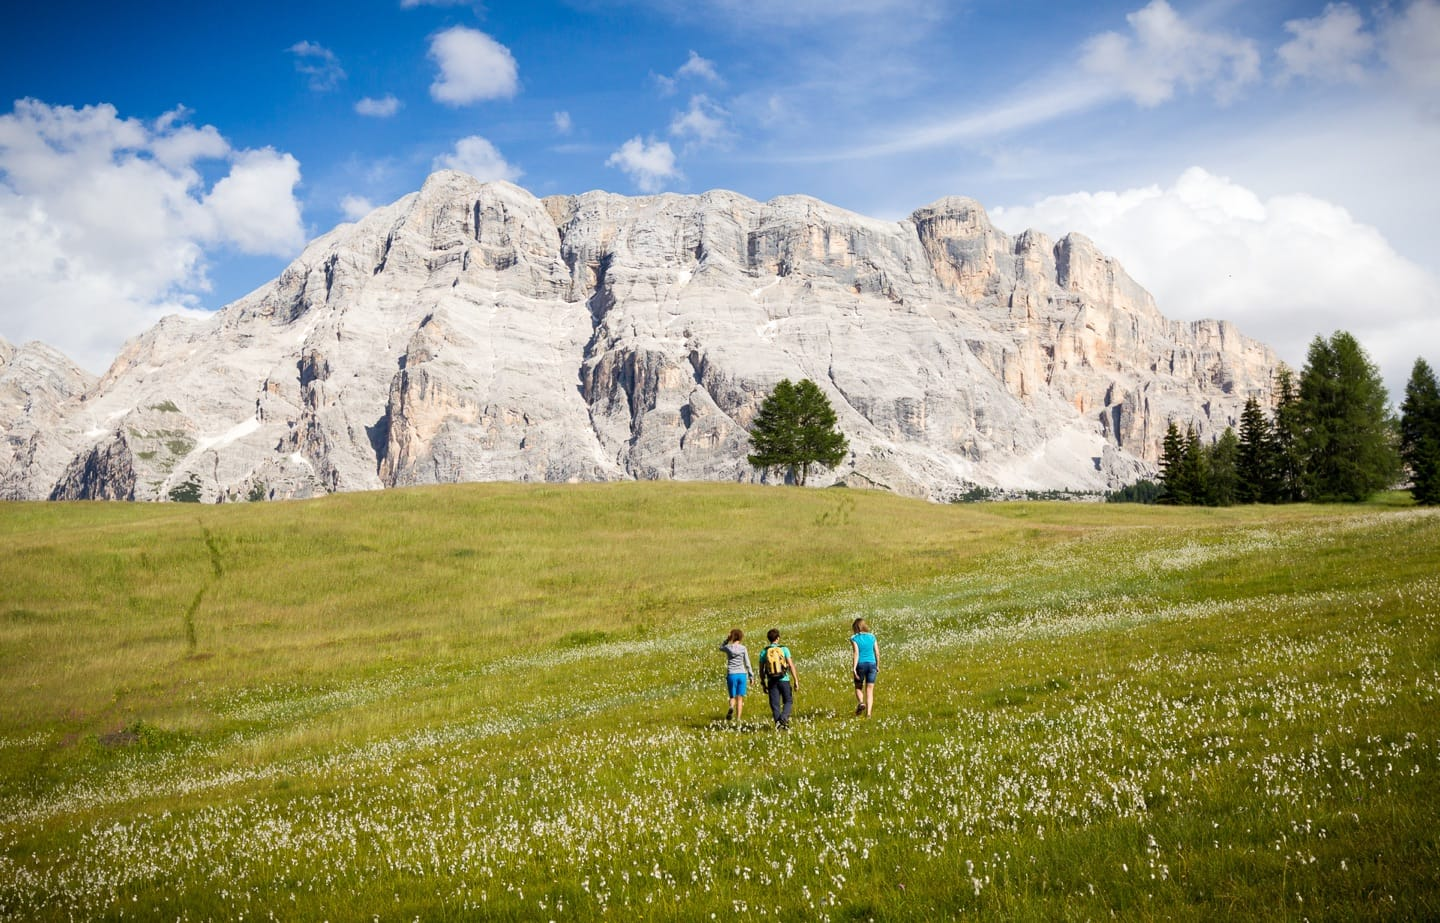 Trekking in the direction of the Cir peaks in Alta Badia.